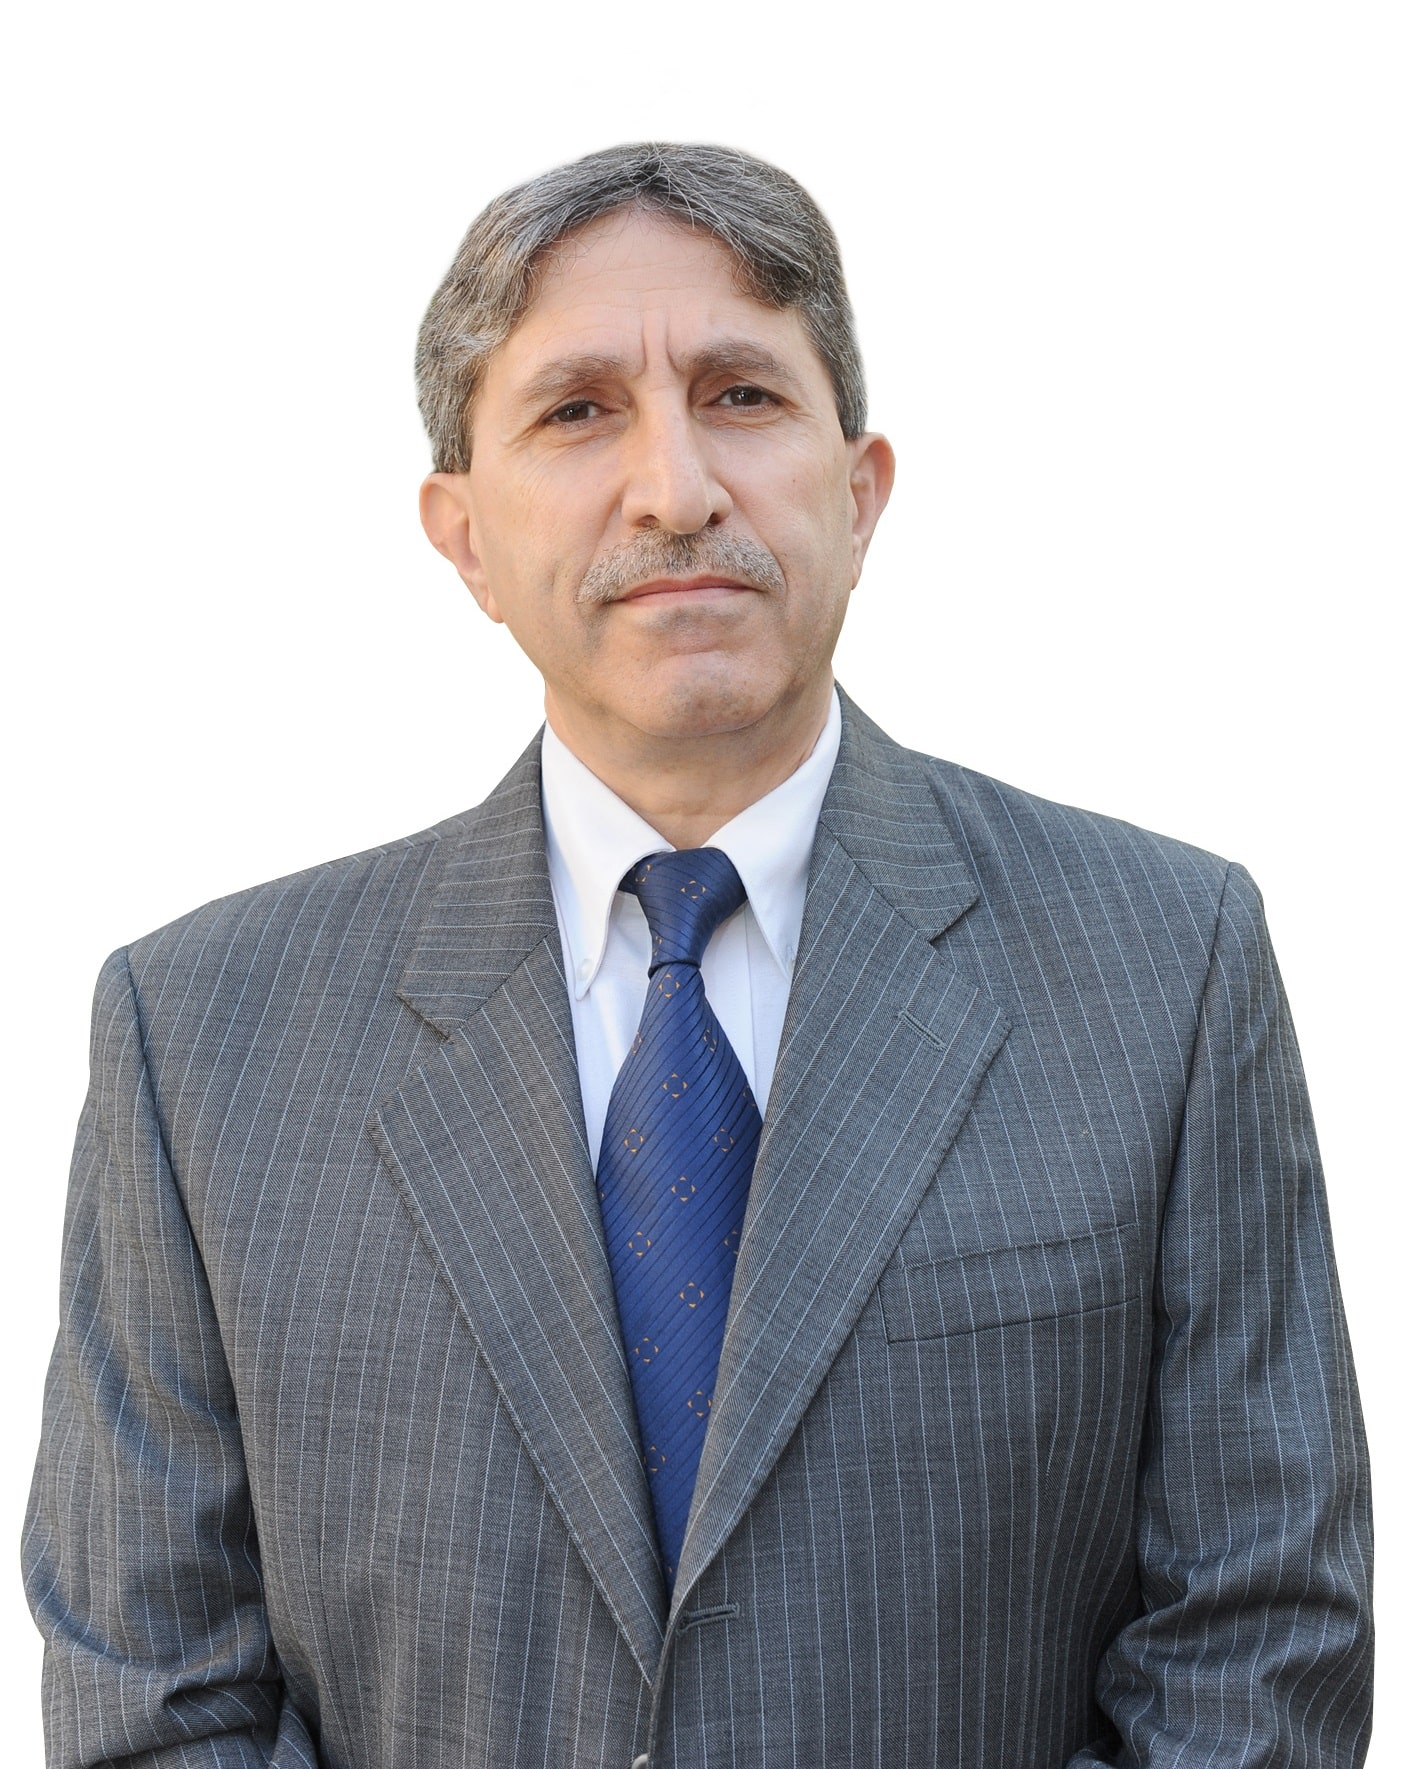 Dr. Muhieddine Seoud